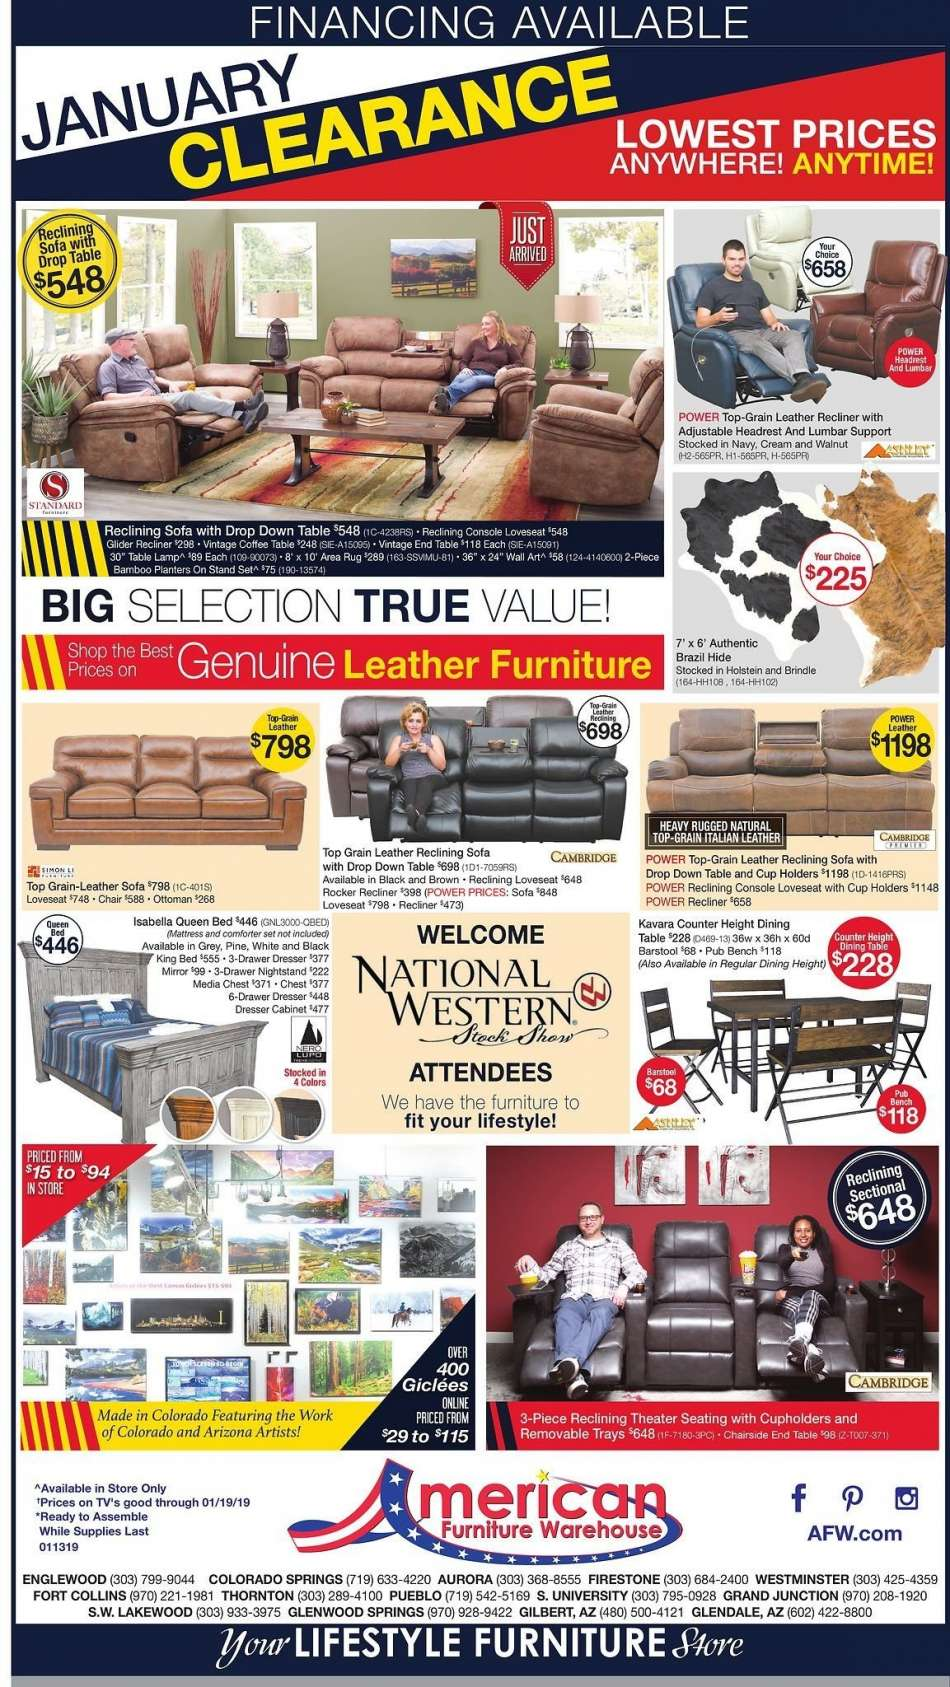 current american furniture warehouse flyer 01 13 2019 01 19 2019american furniture warehouse flyer 01 13 2019 01 19 2019 sales products